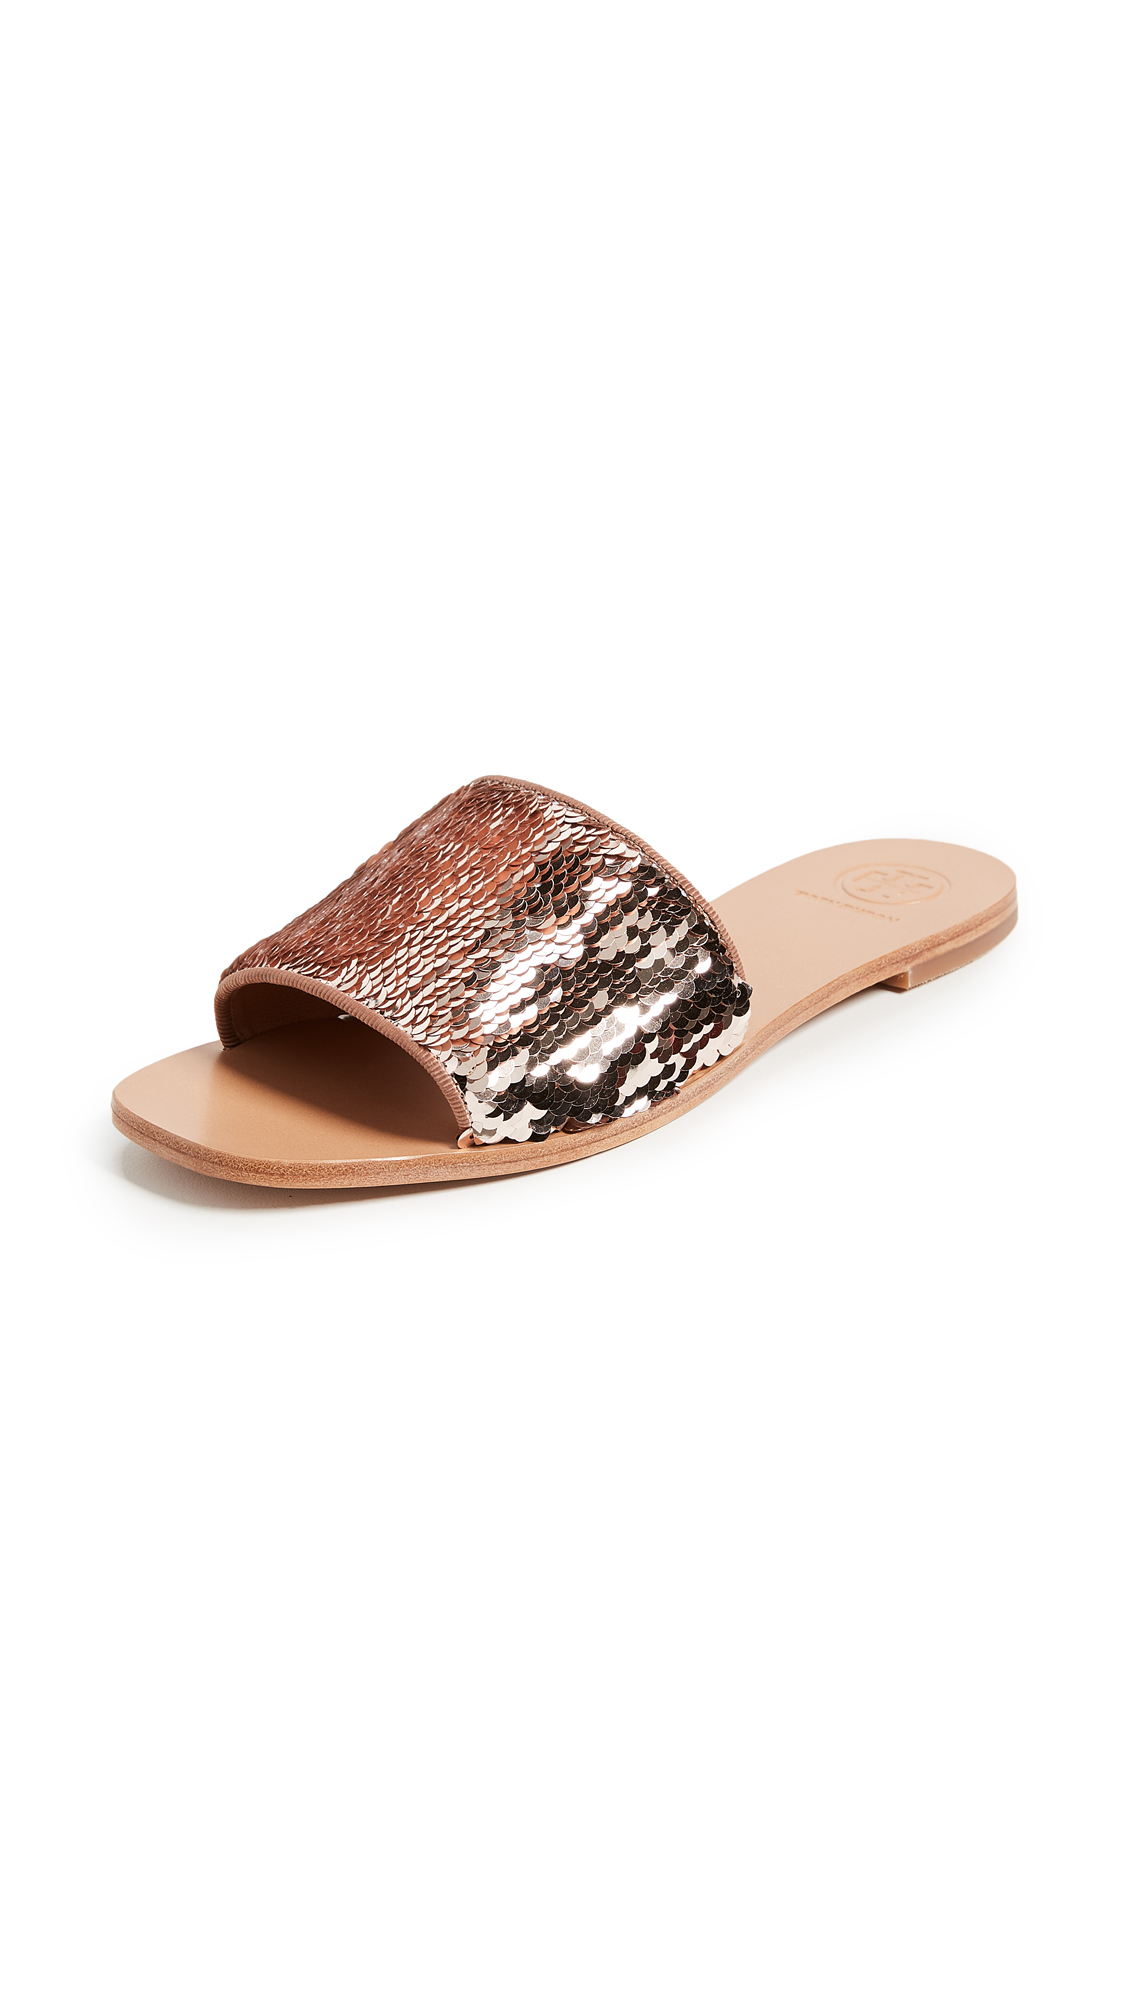 Tory Burch Carter Slides - Perfect Blush/Rose Gold